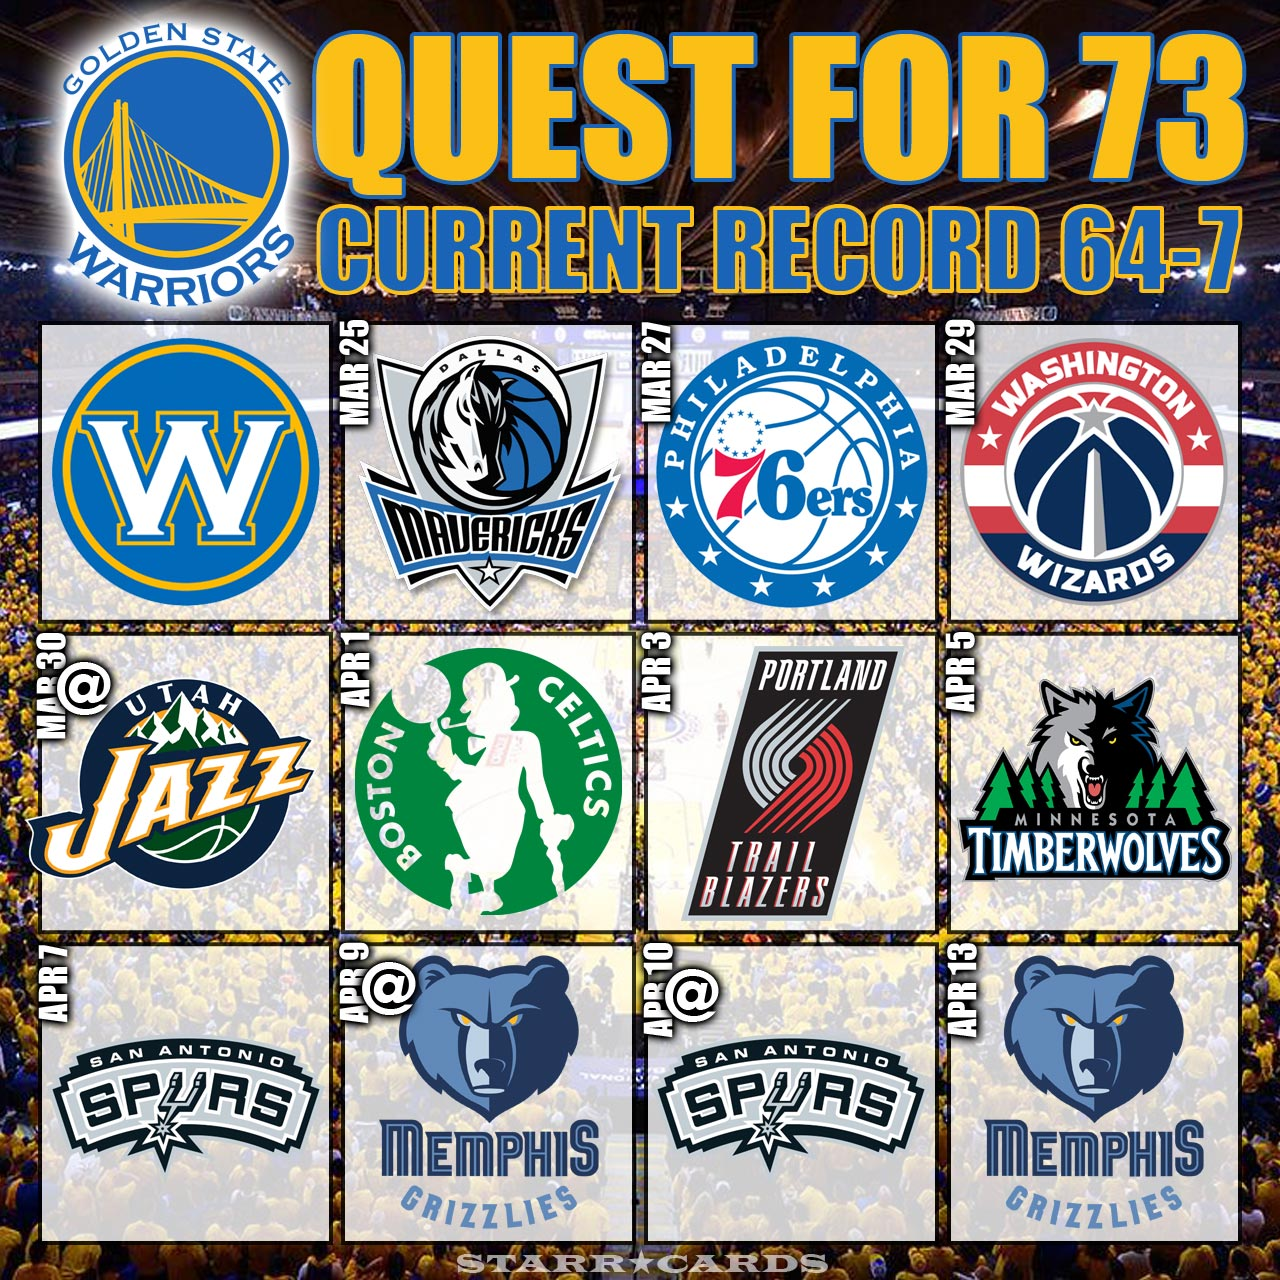 Quest for 73 wins: Warriors move to 64-7